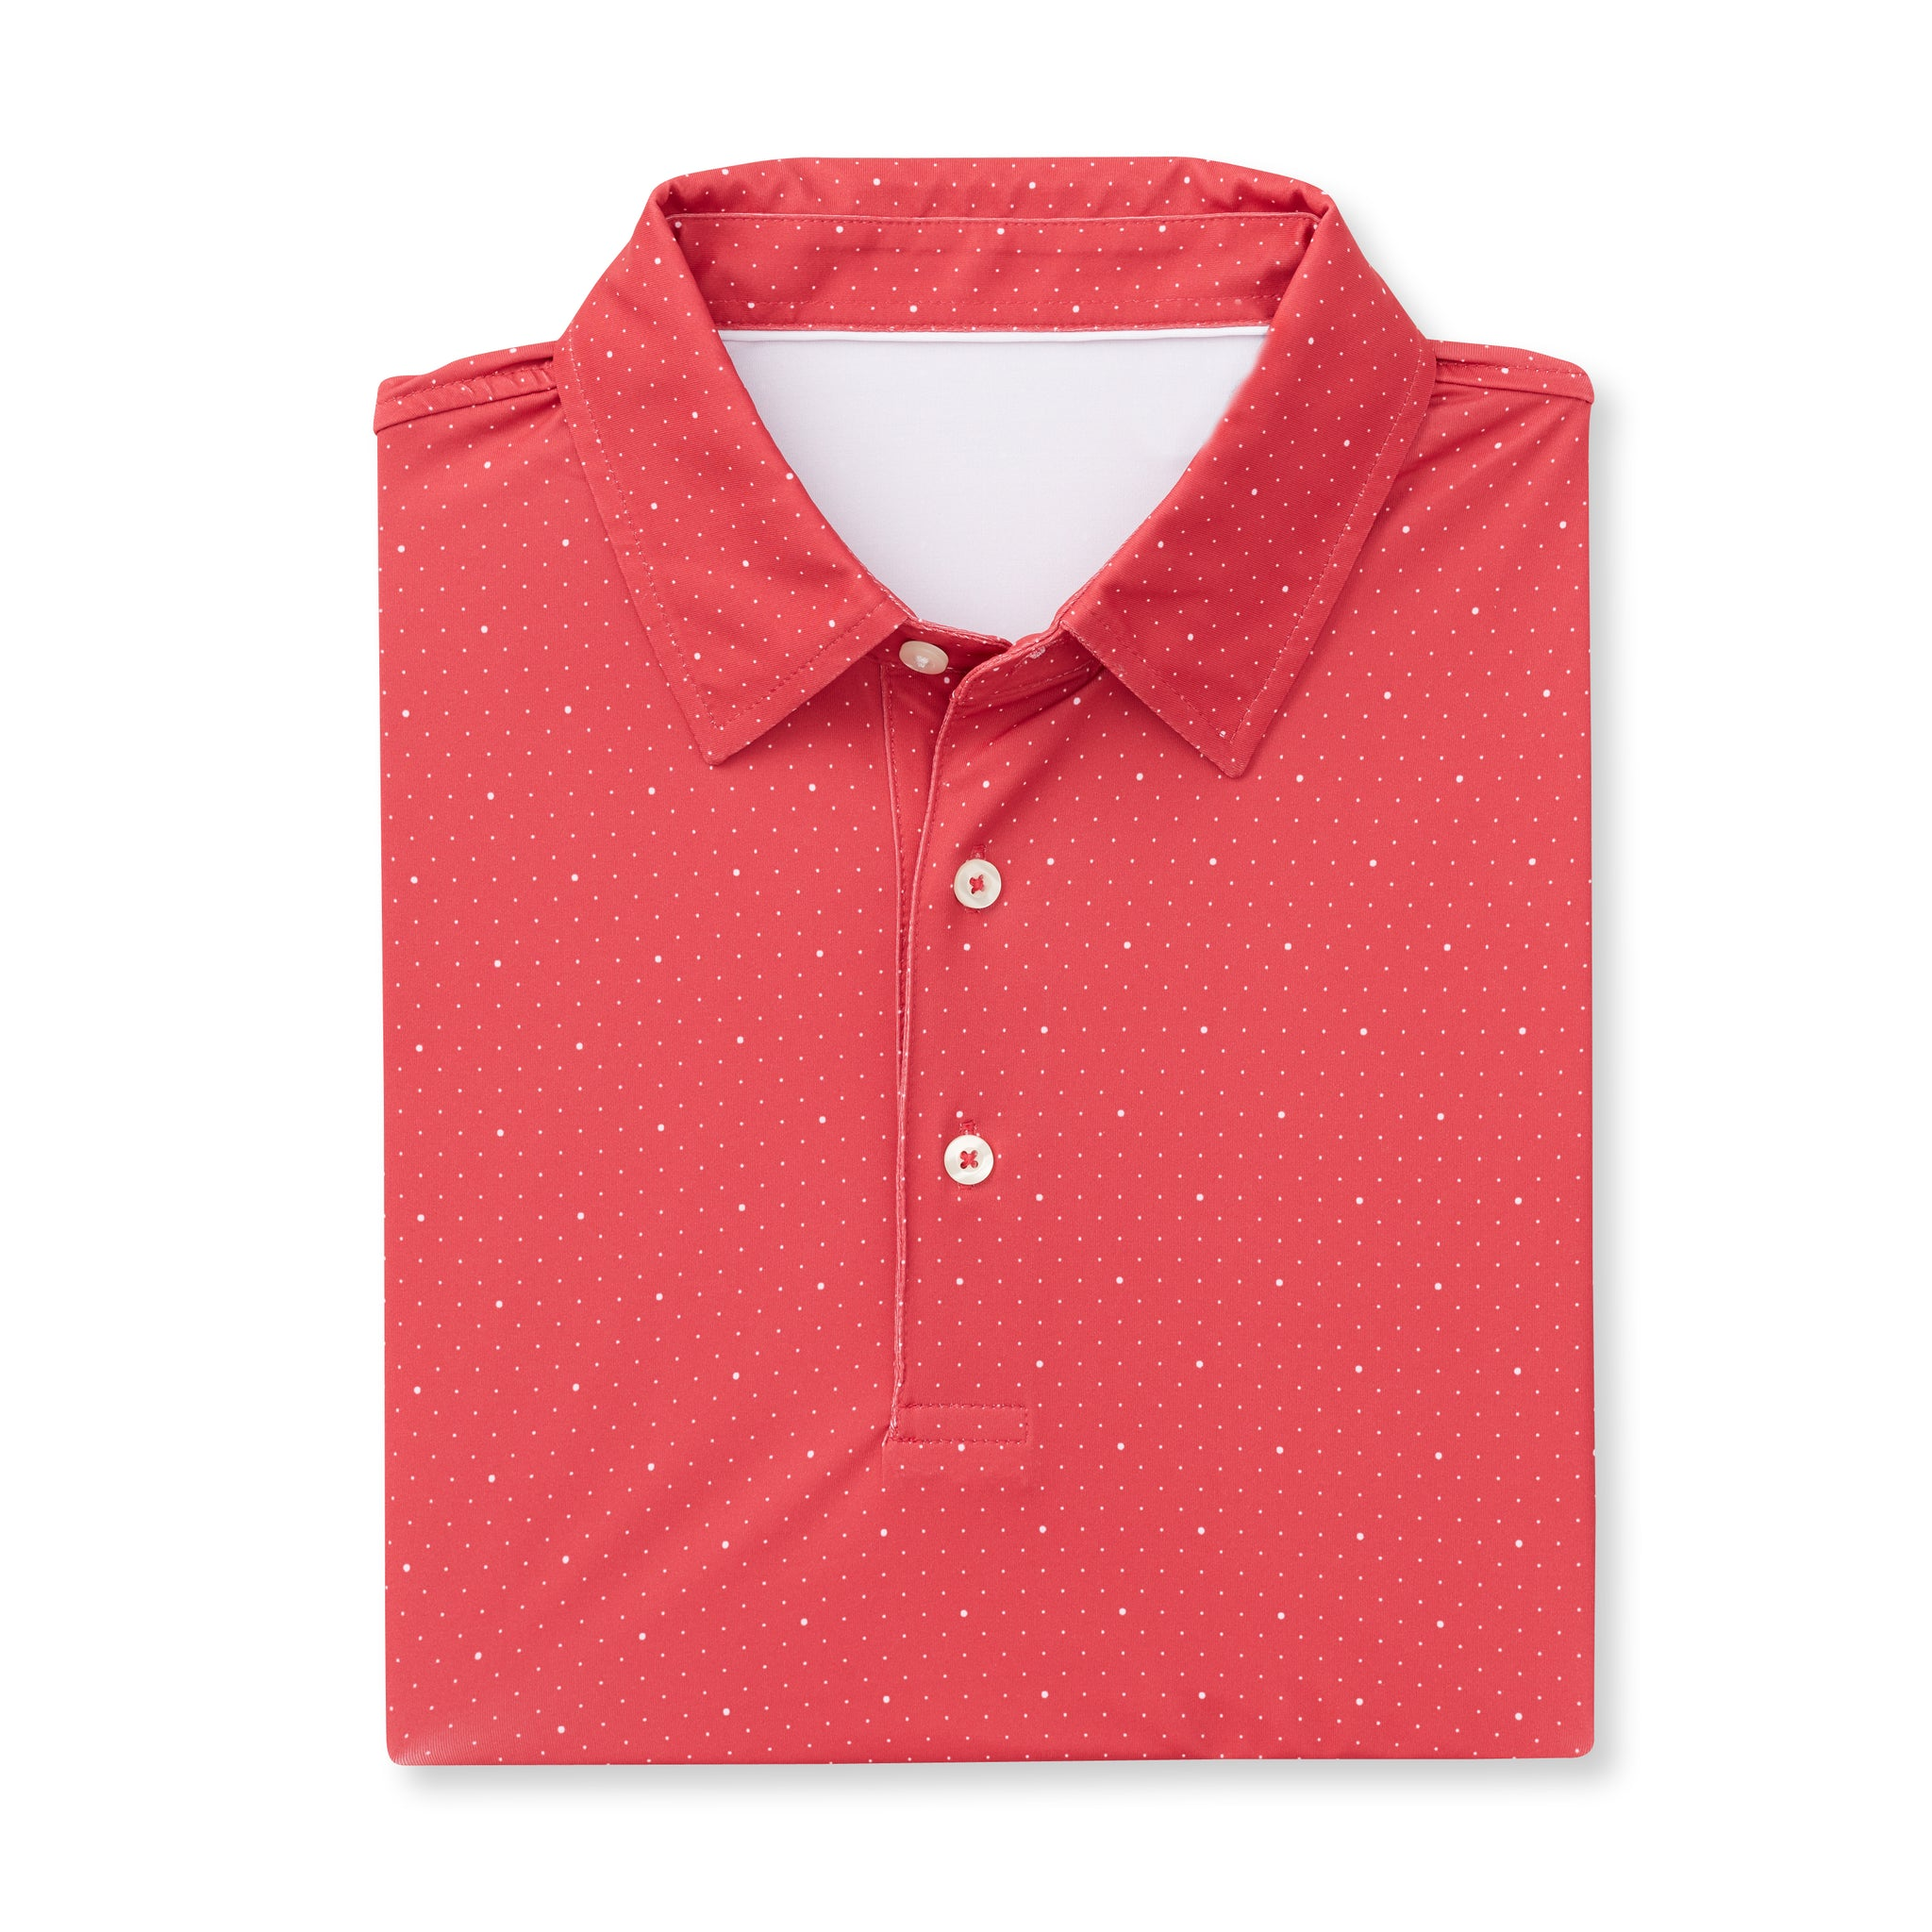 ECOTEC Short Sleeve Dual Dot Polo - Crimson/White IS76803